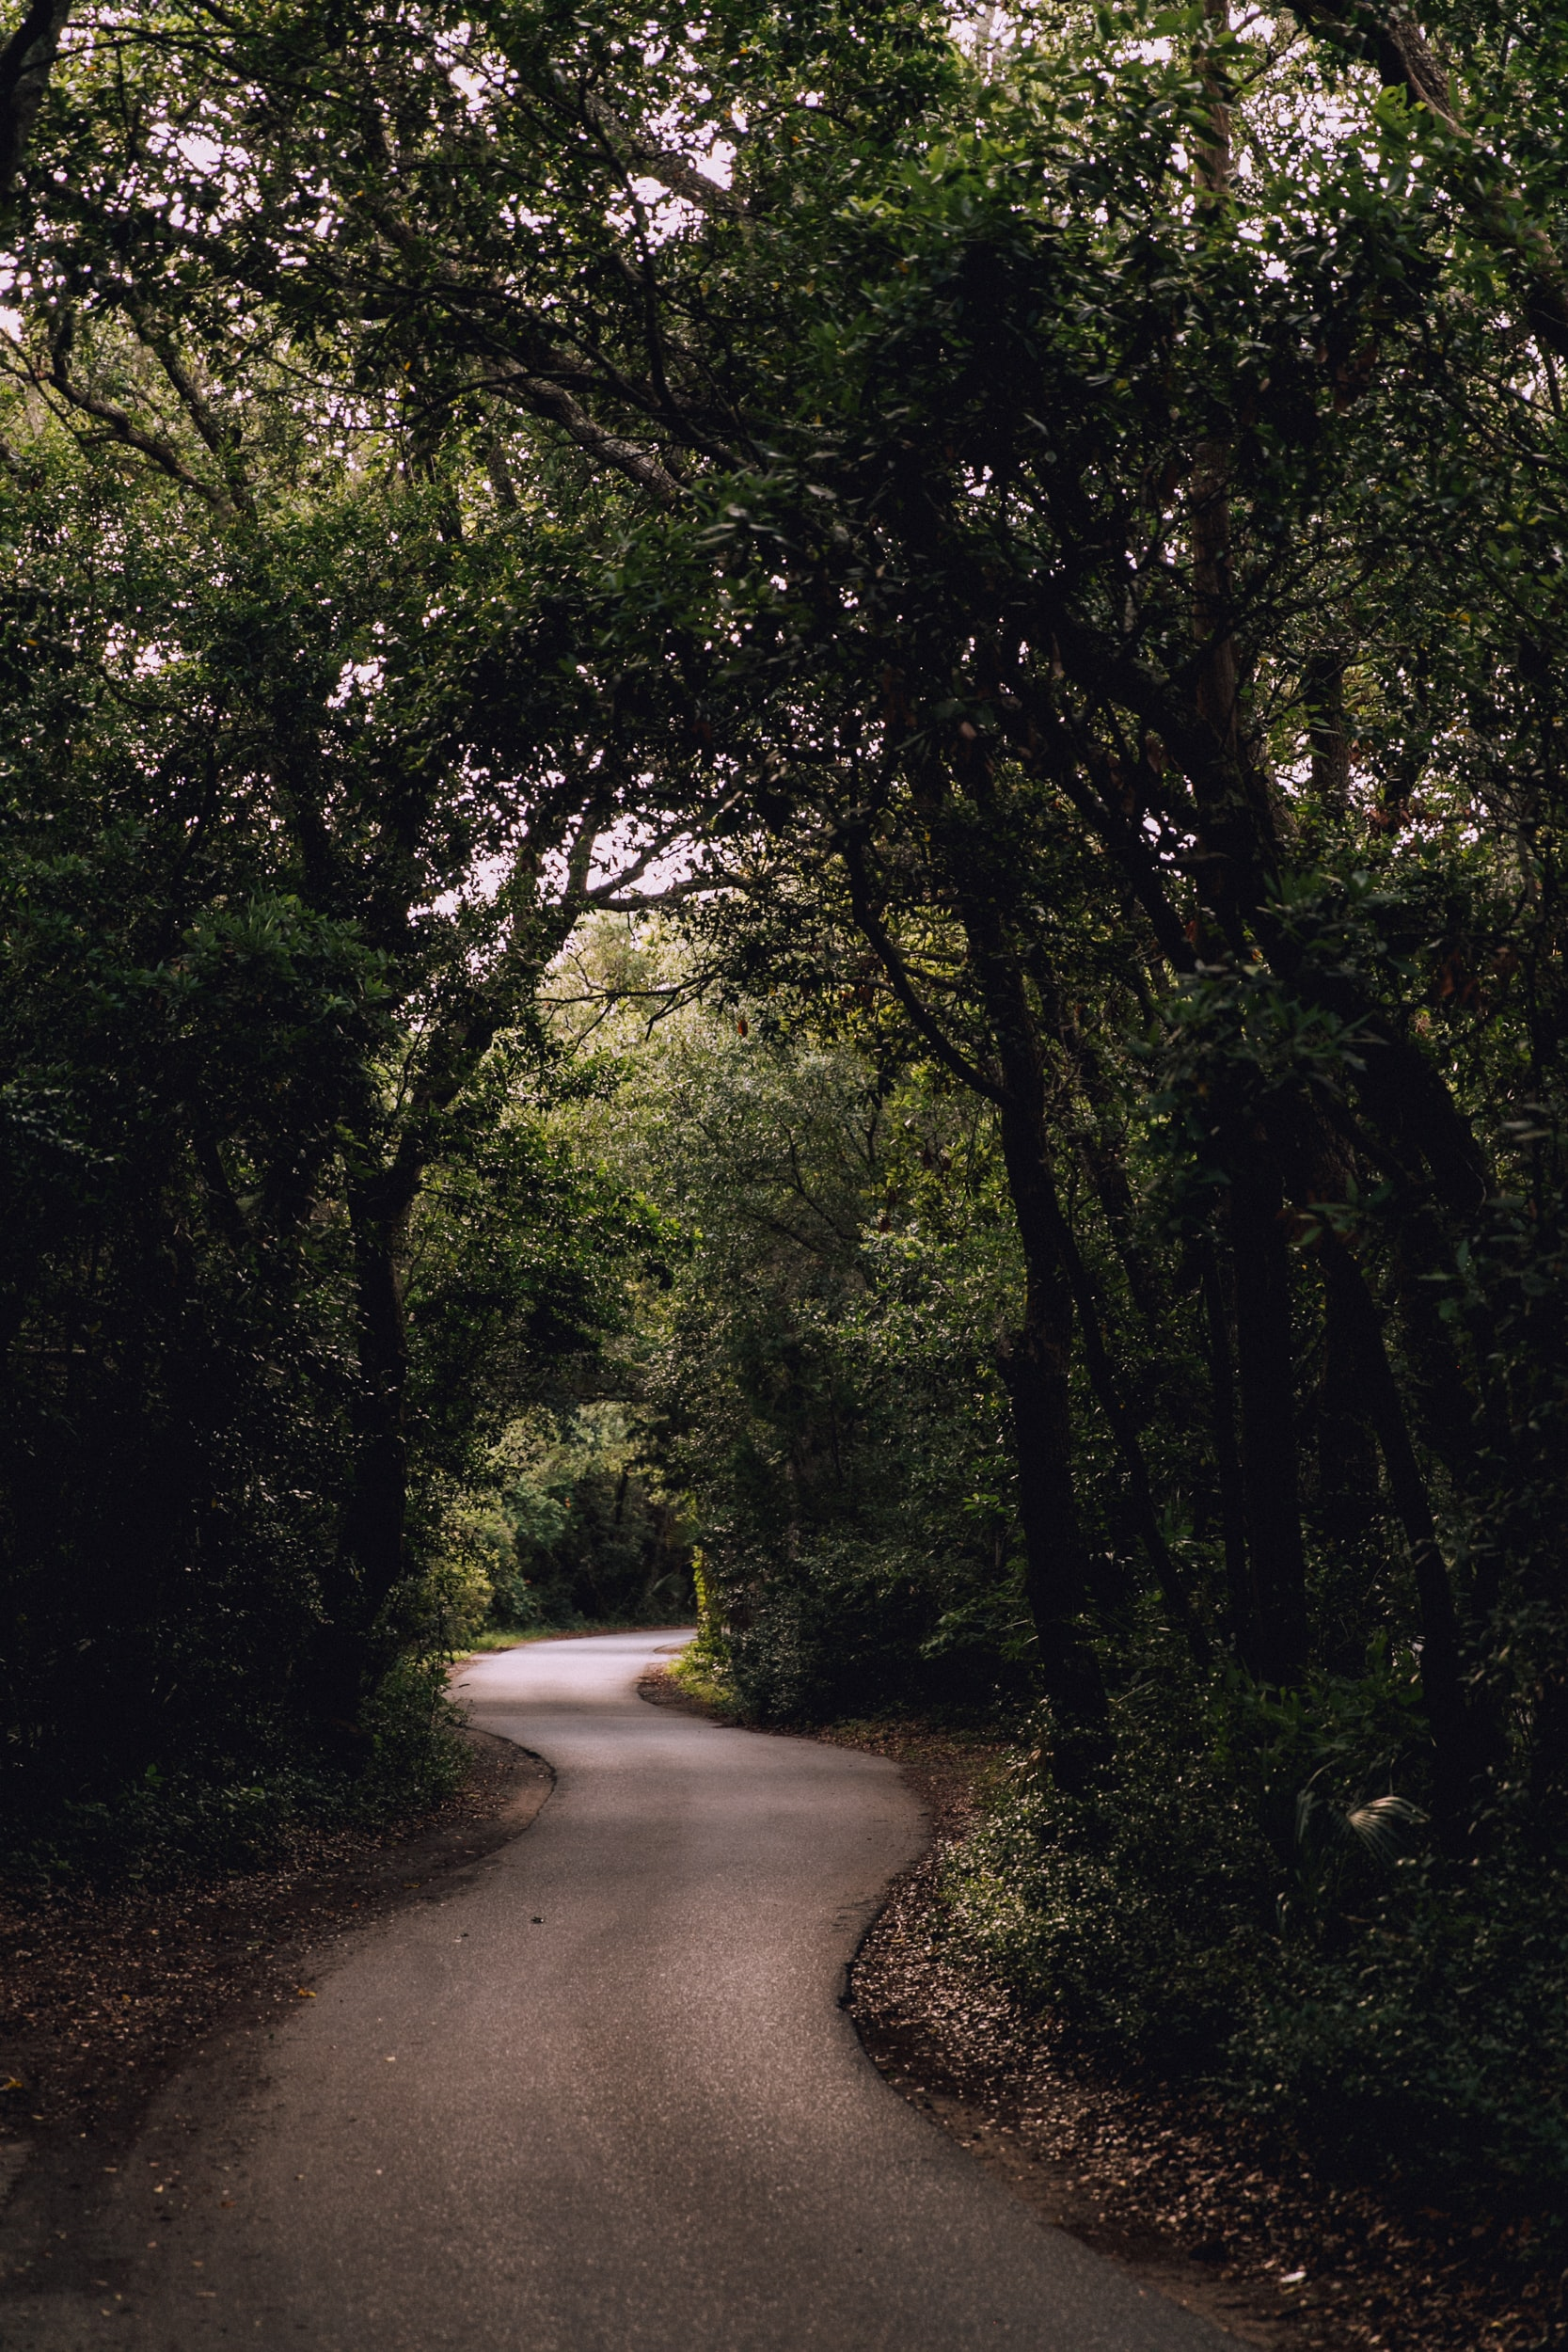 road surrounded with green trees